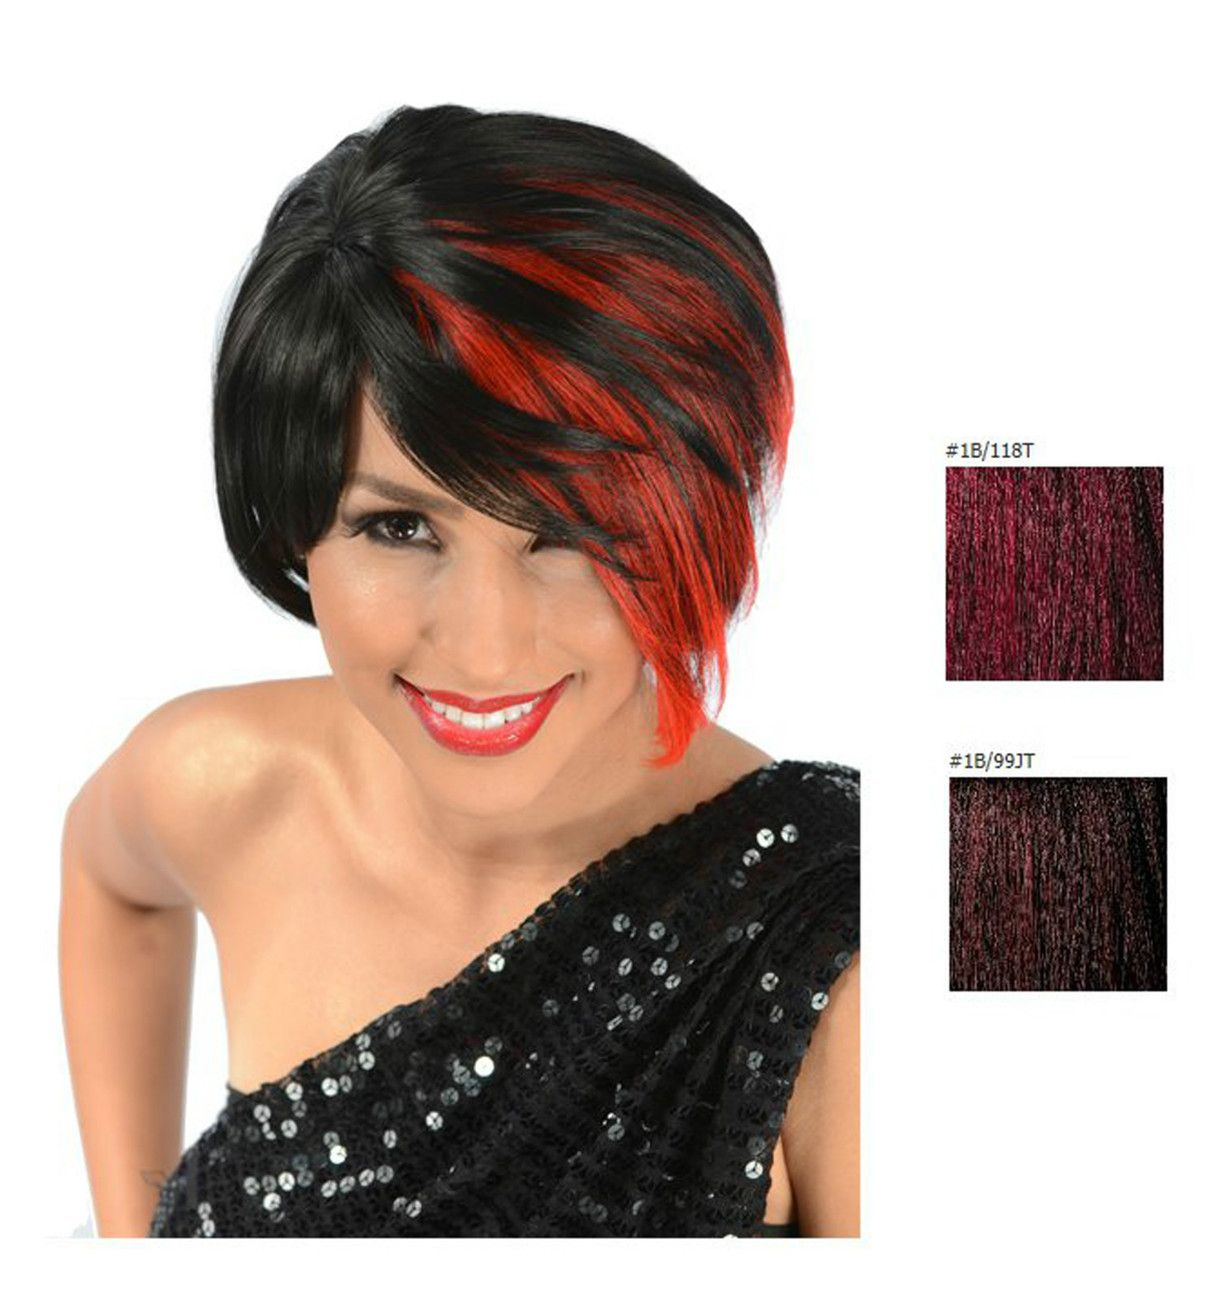 rhiana synthetic short hair wig - color: black w/ fire red